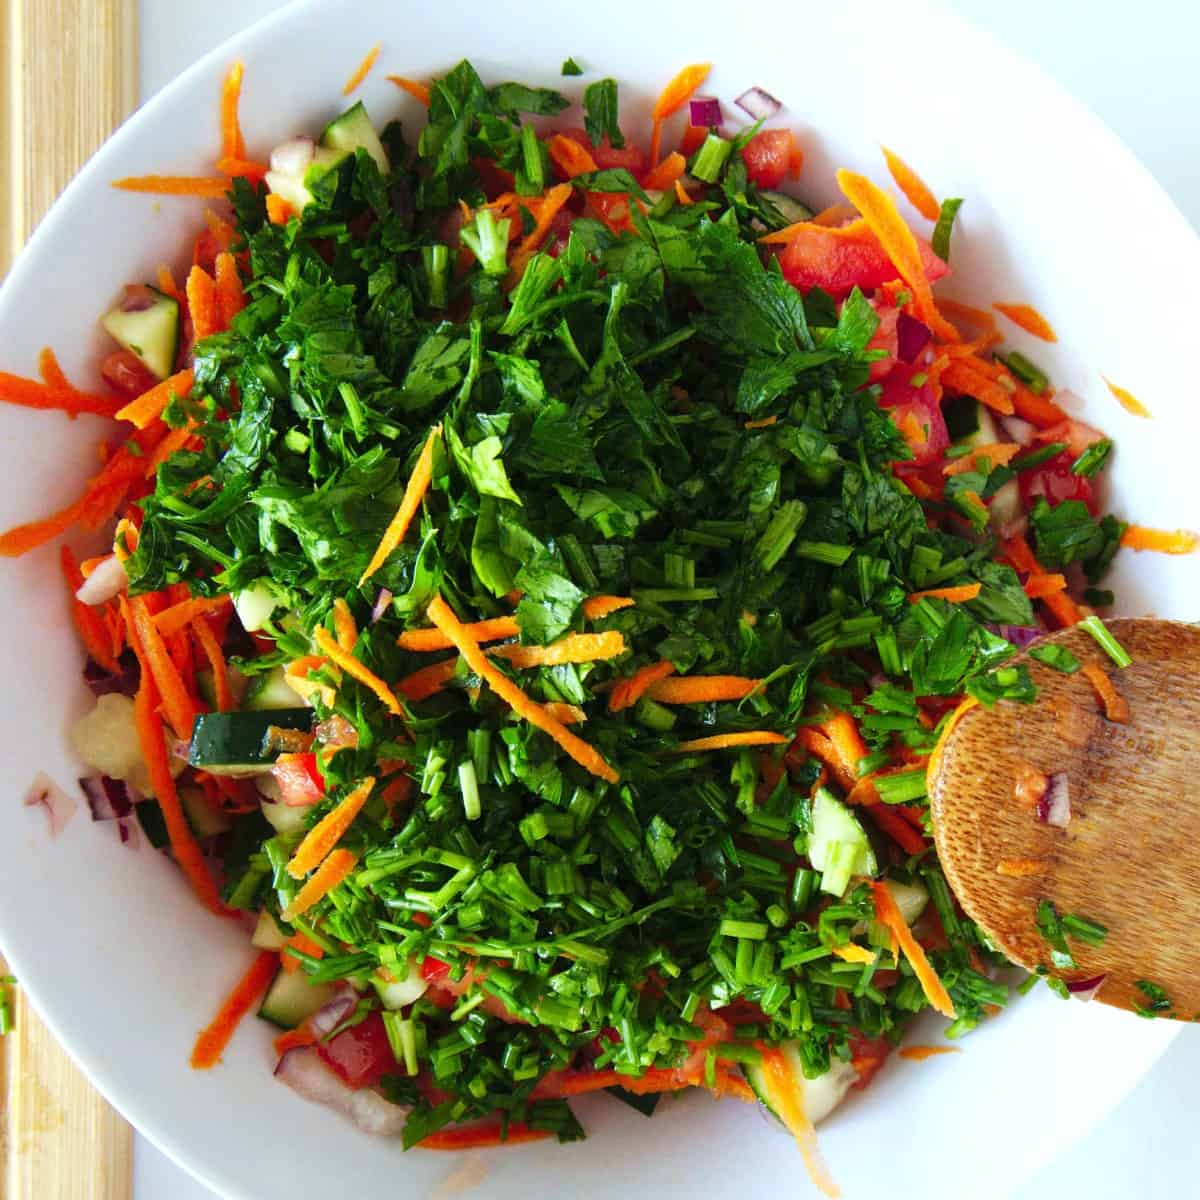 Cucumber, shredded carrot and fresh chopped parsley is added to the tomatoes and onions in an overhead shot.